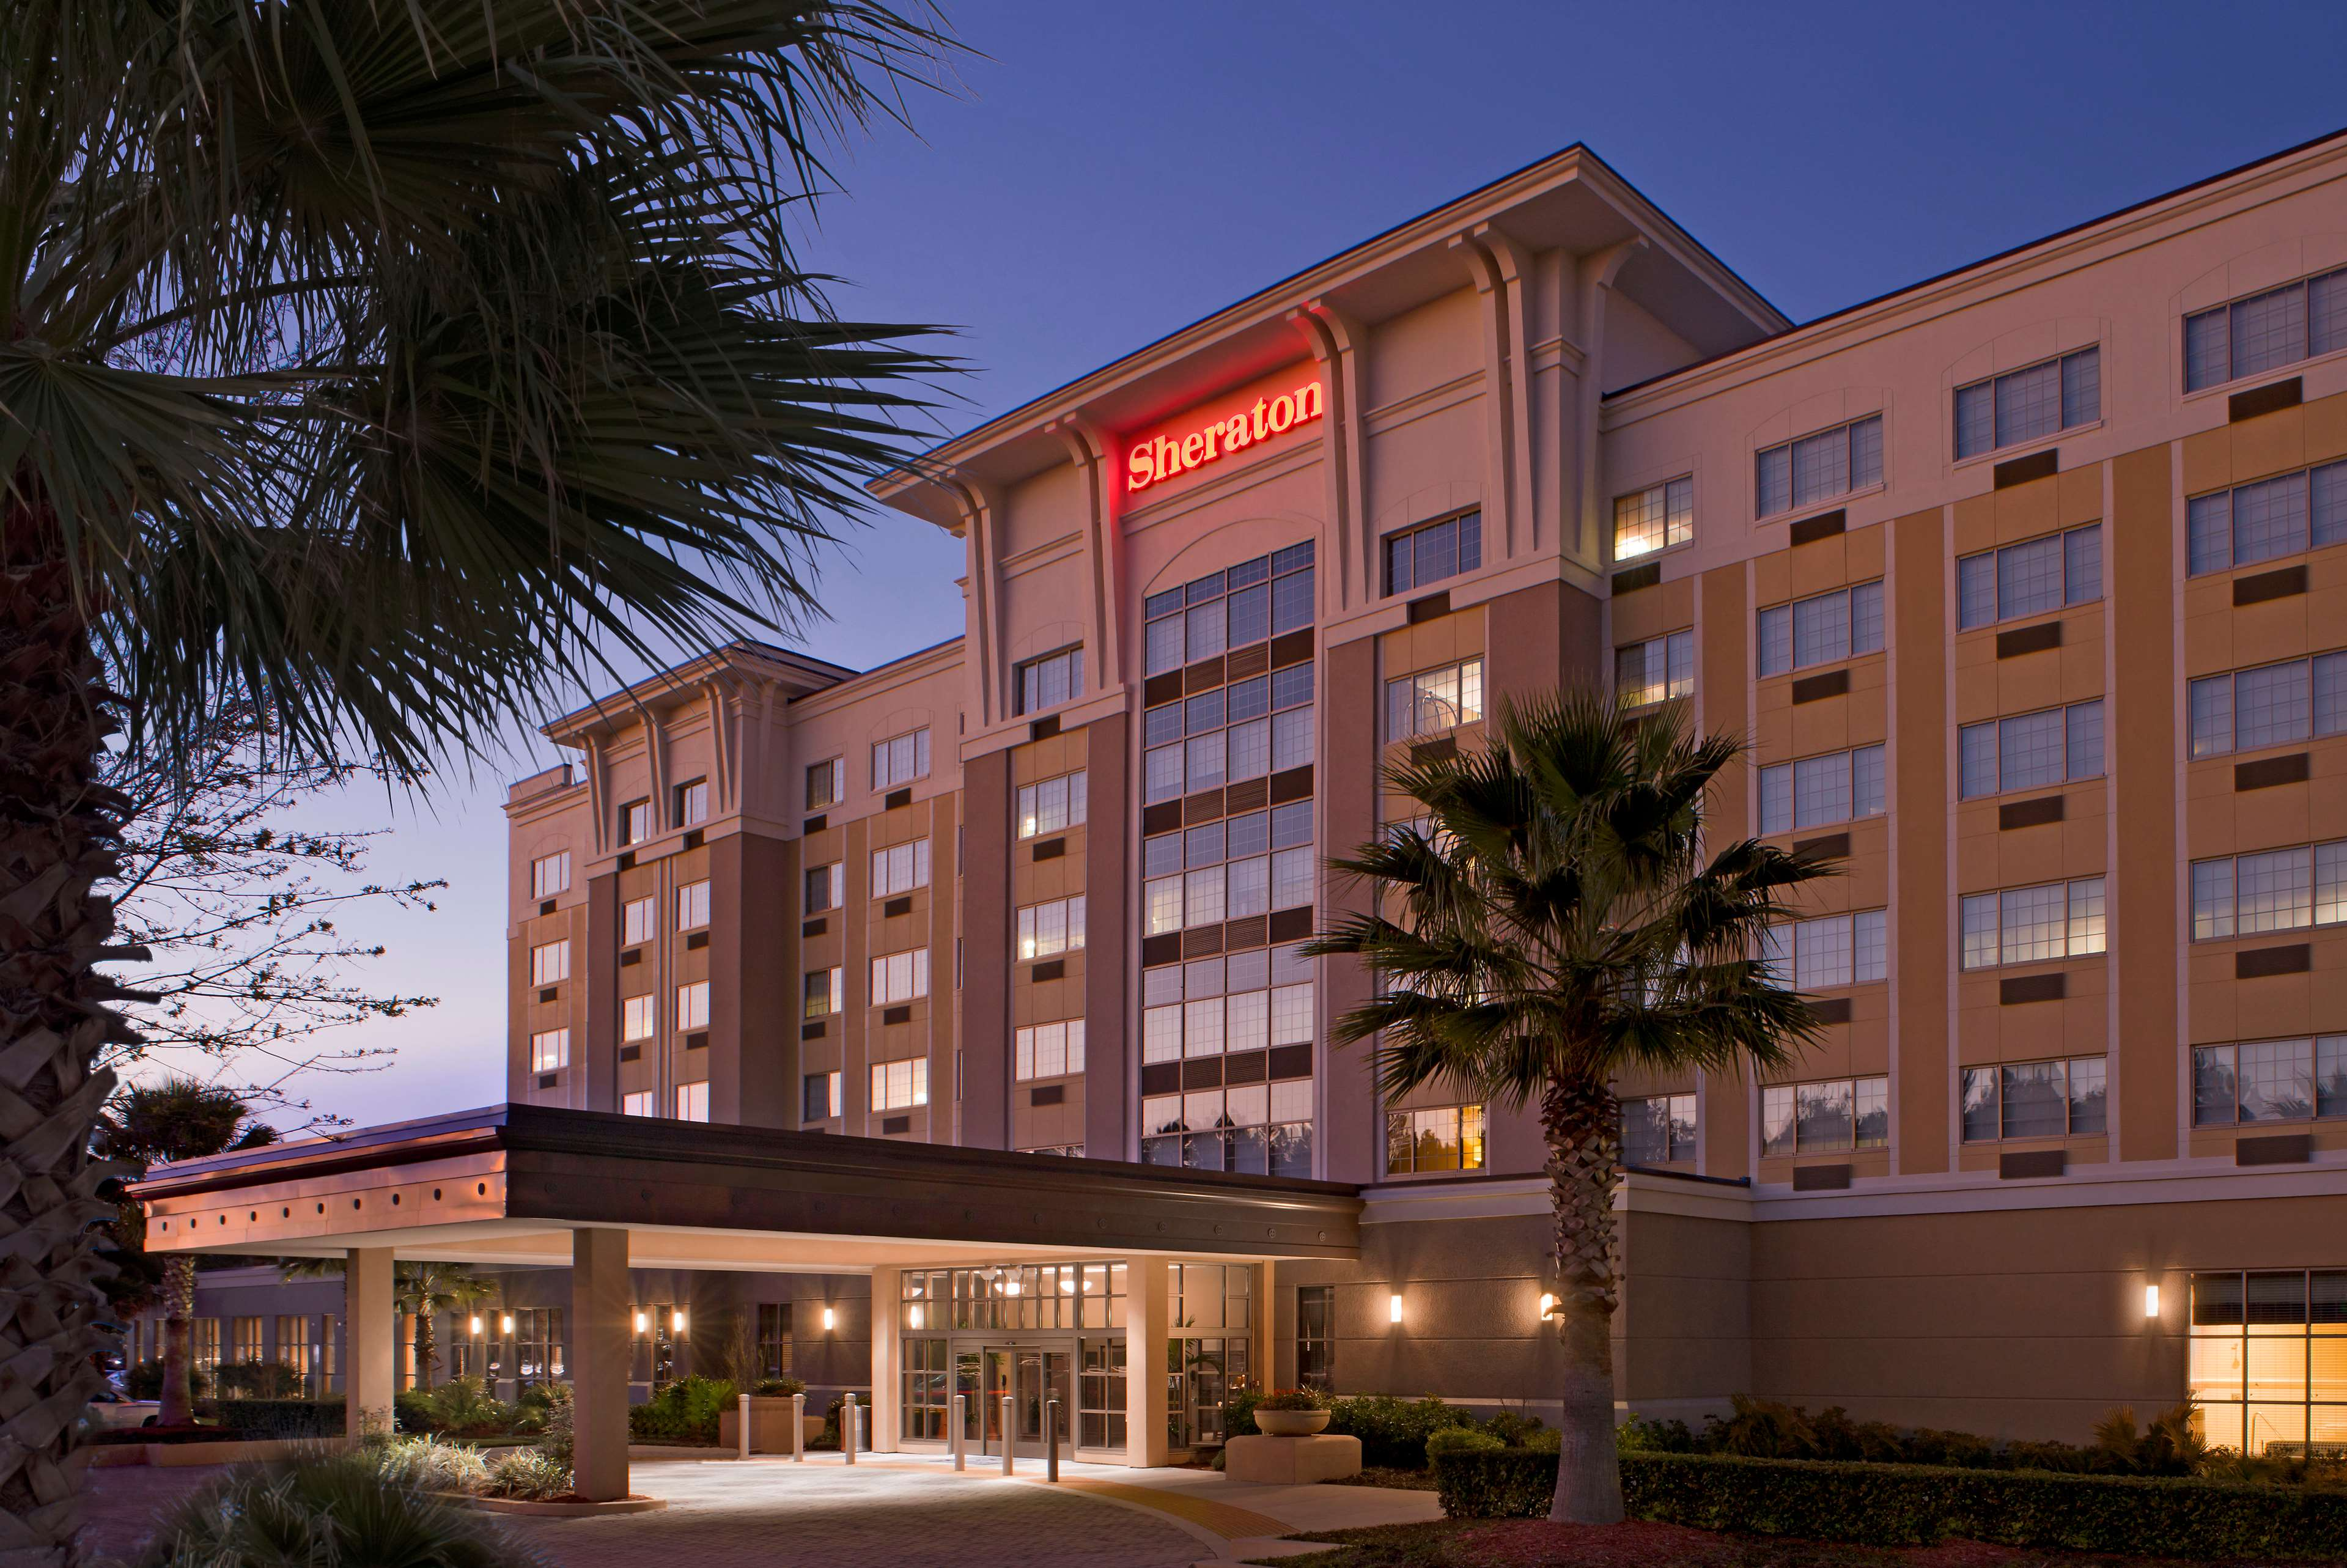 Sheraton jacksonville hotel coupons near me in for Hotels 8 near me